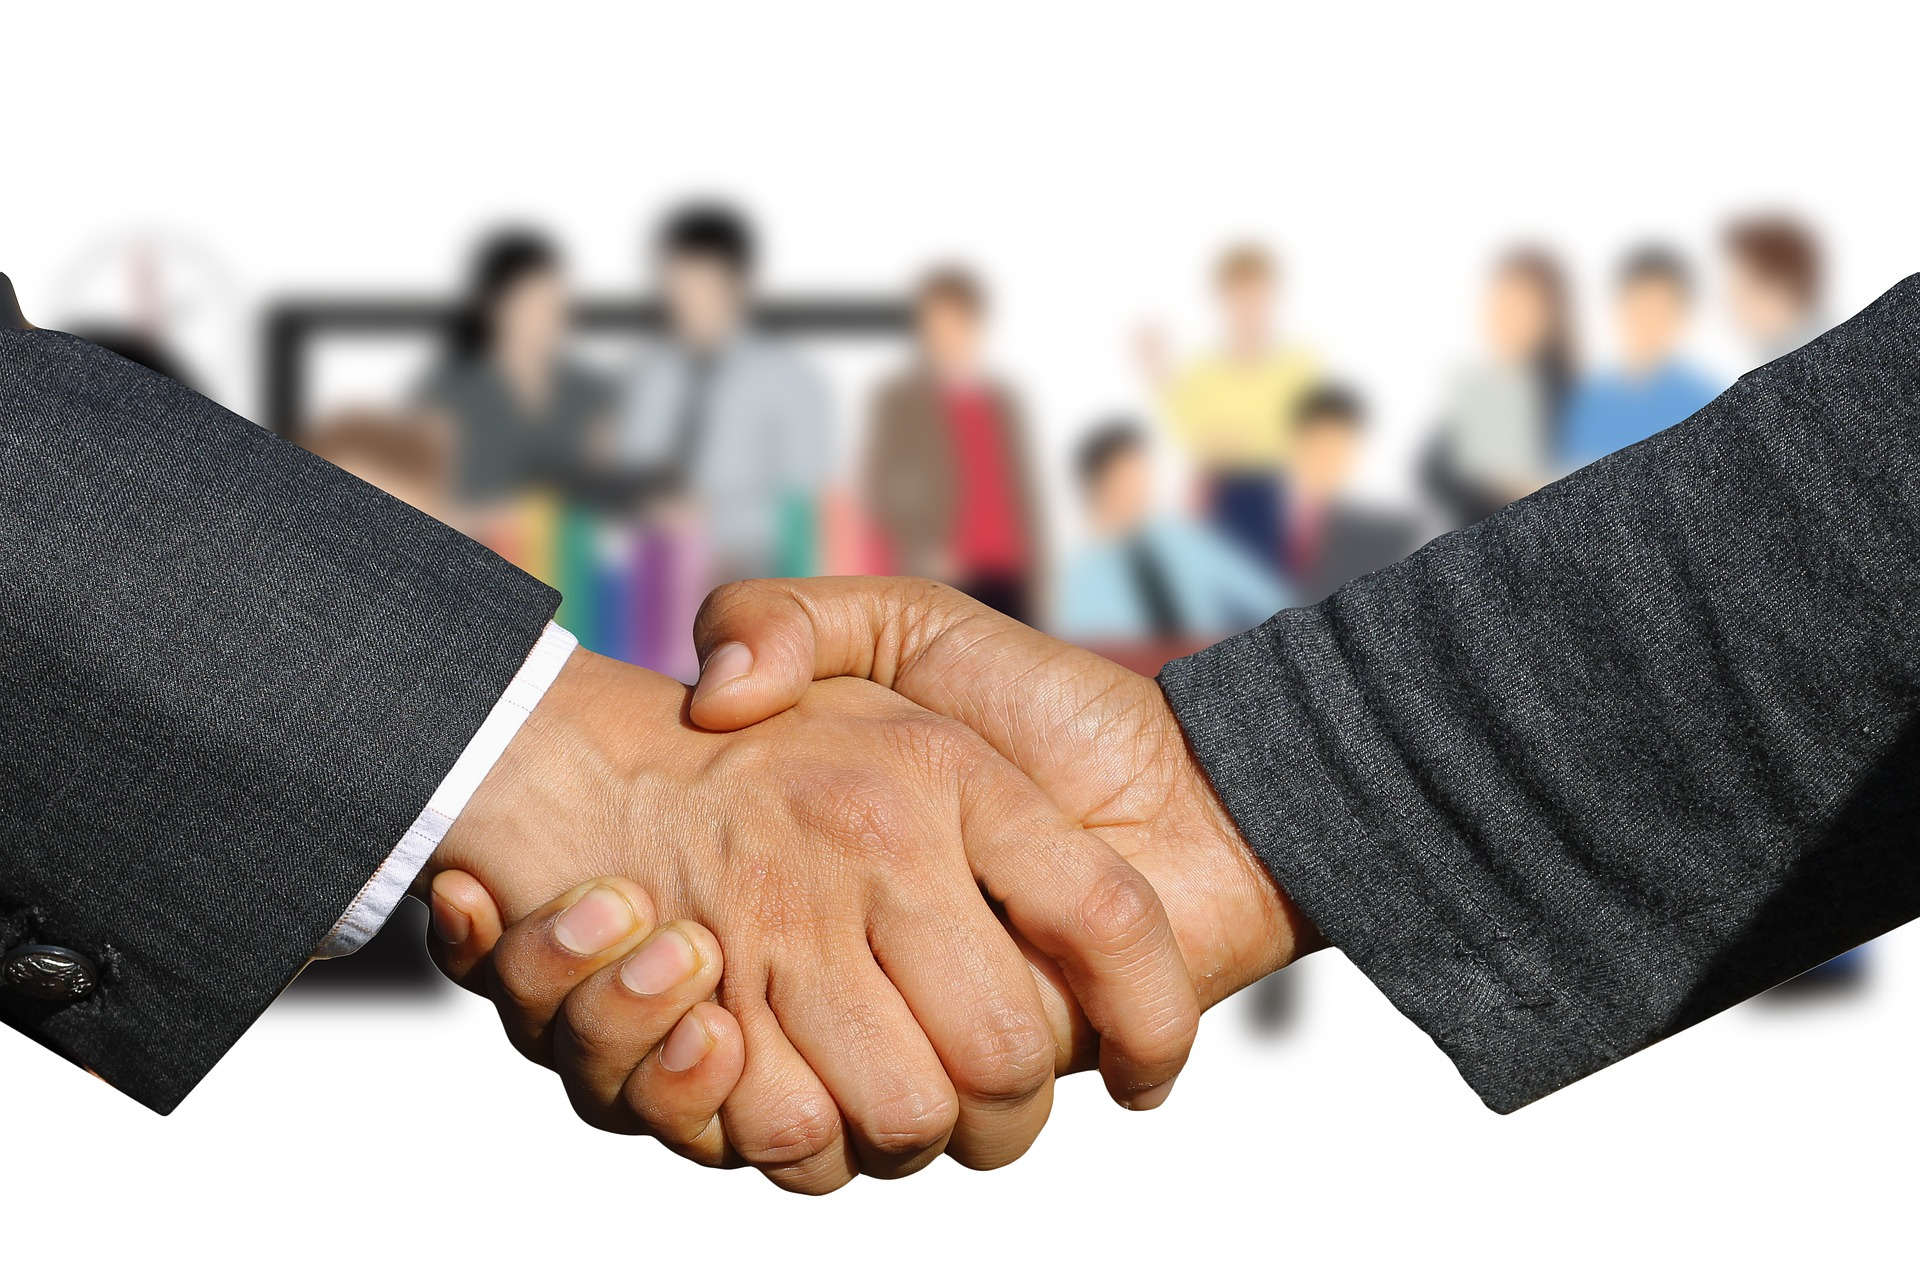 Networking - Shaking Hands